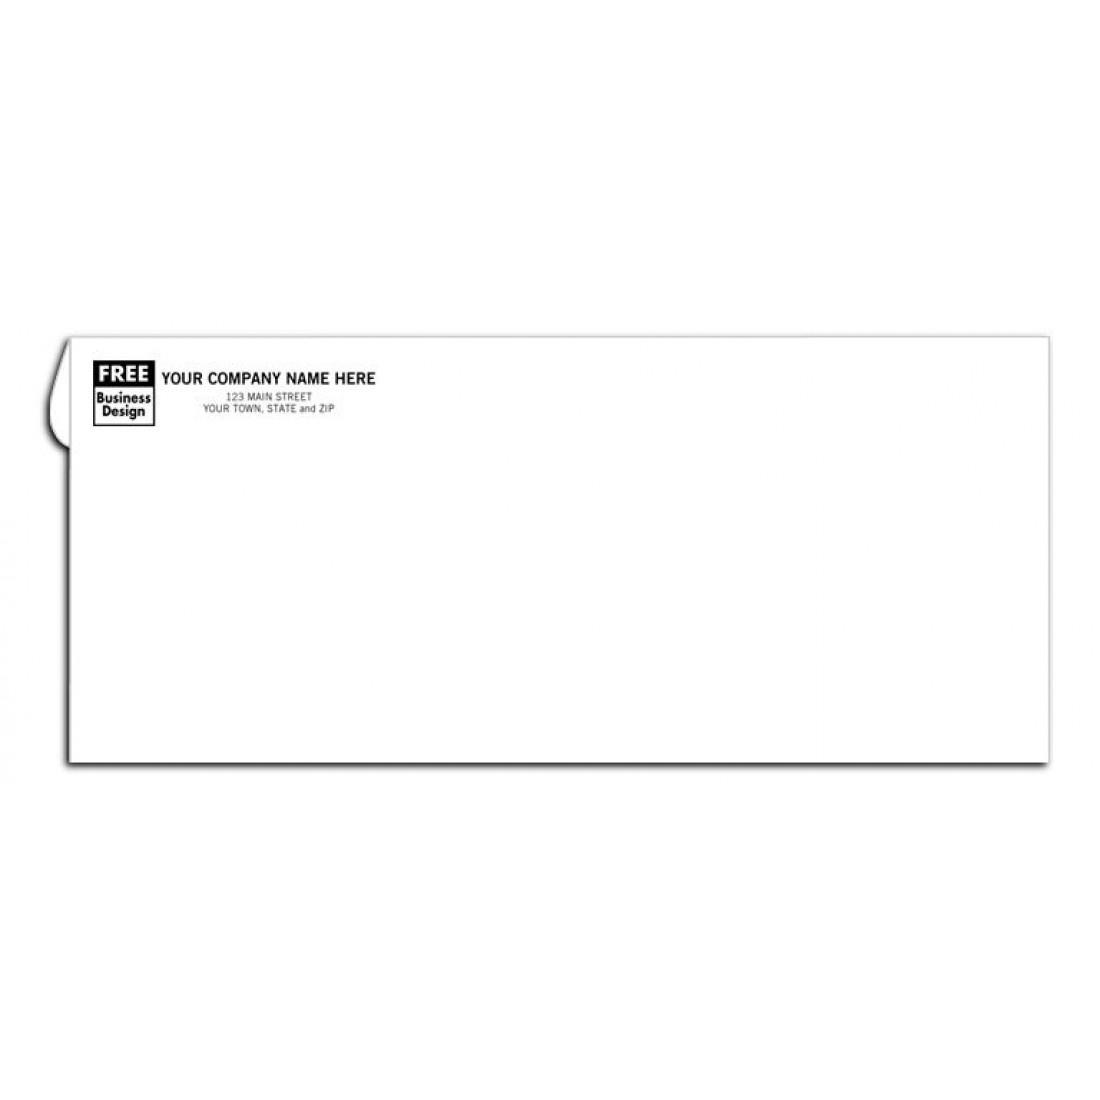 No 10 standard business envelopes no window free shipping for 10 window envelope size